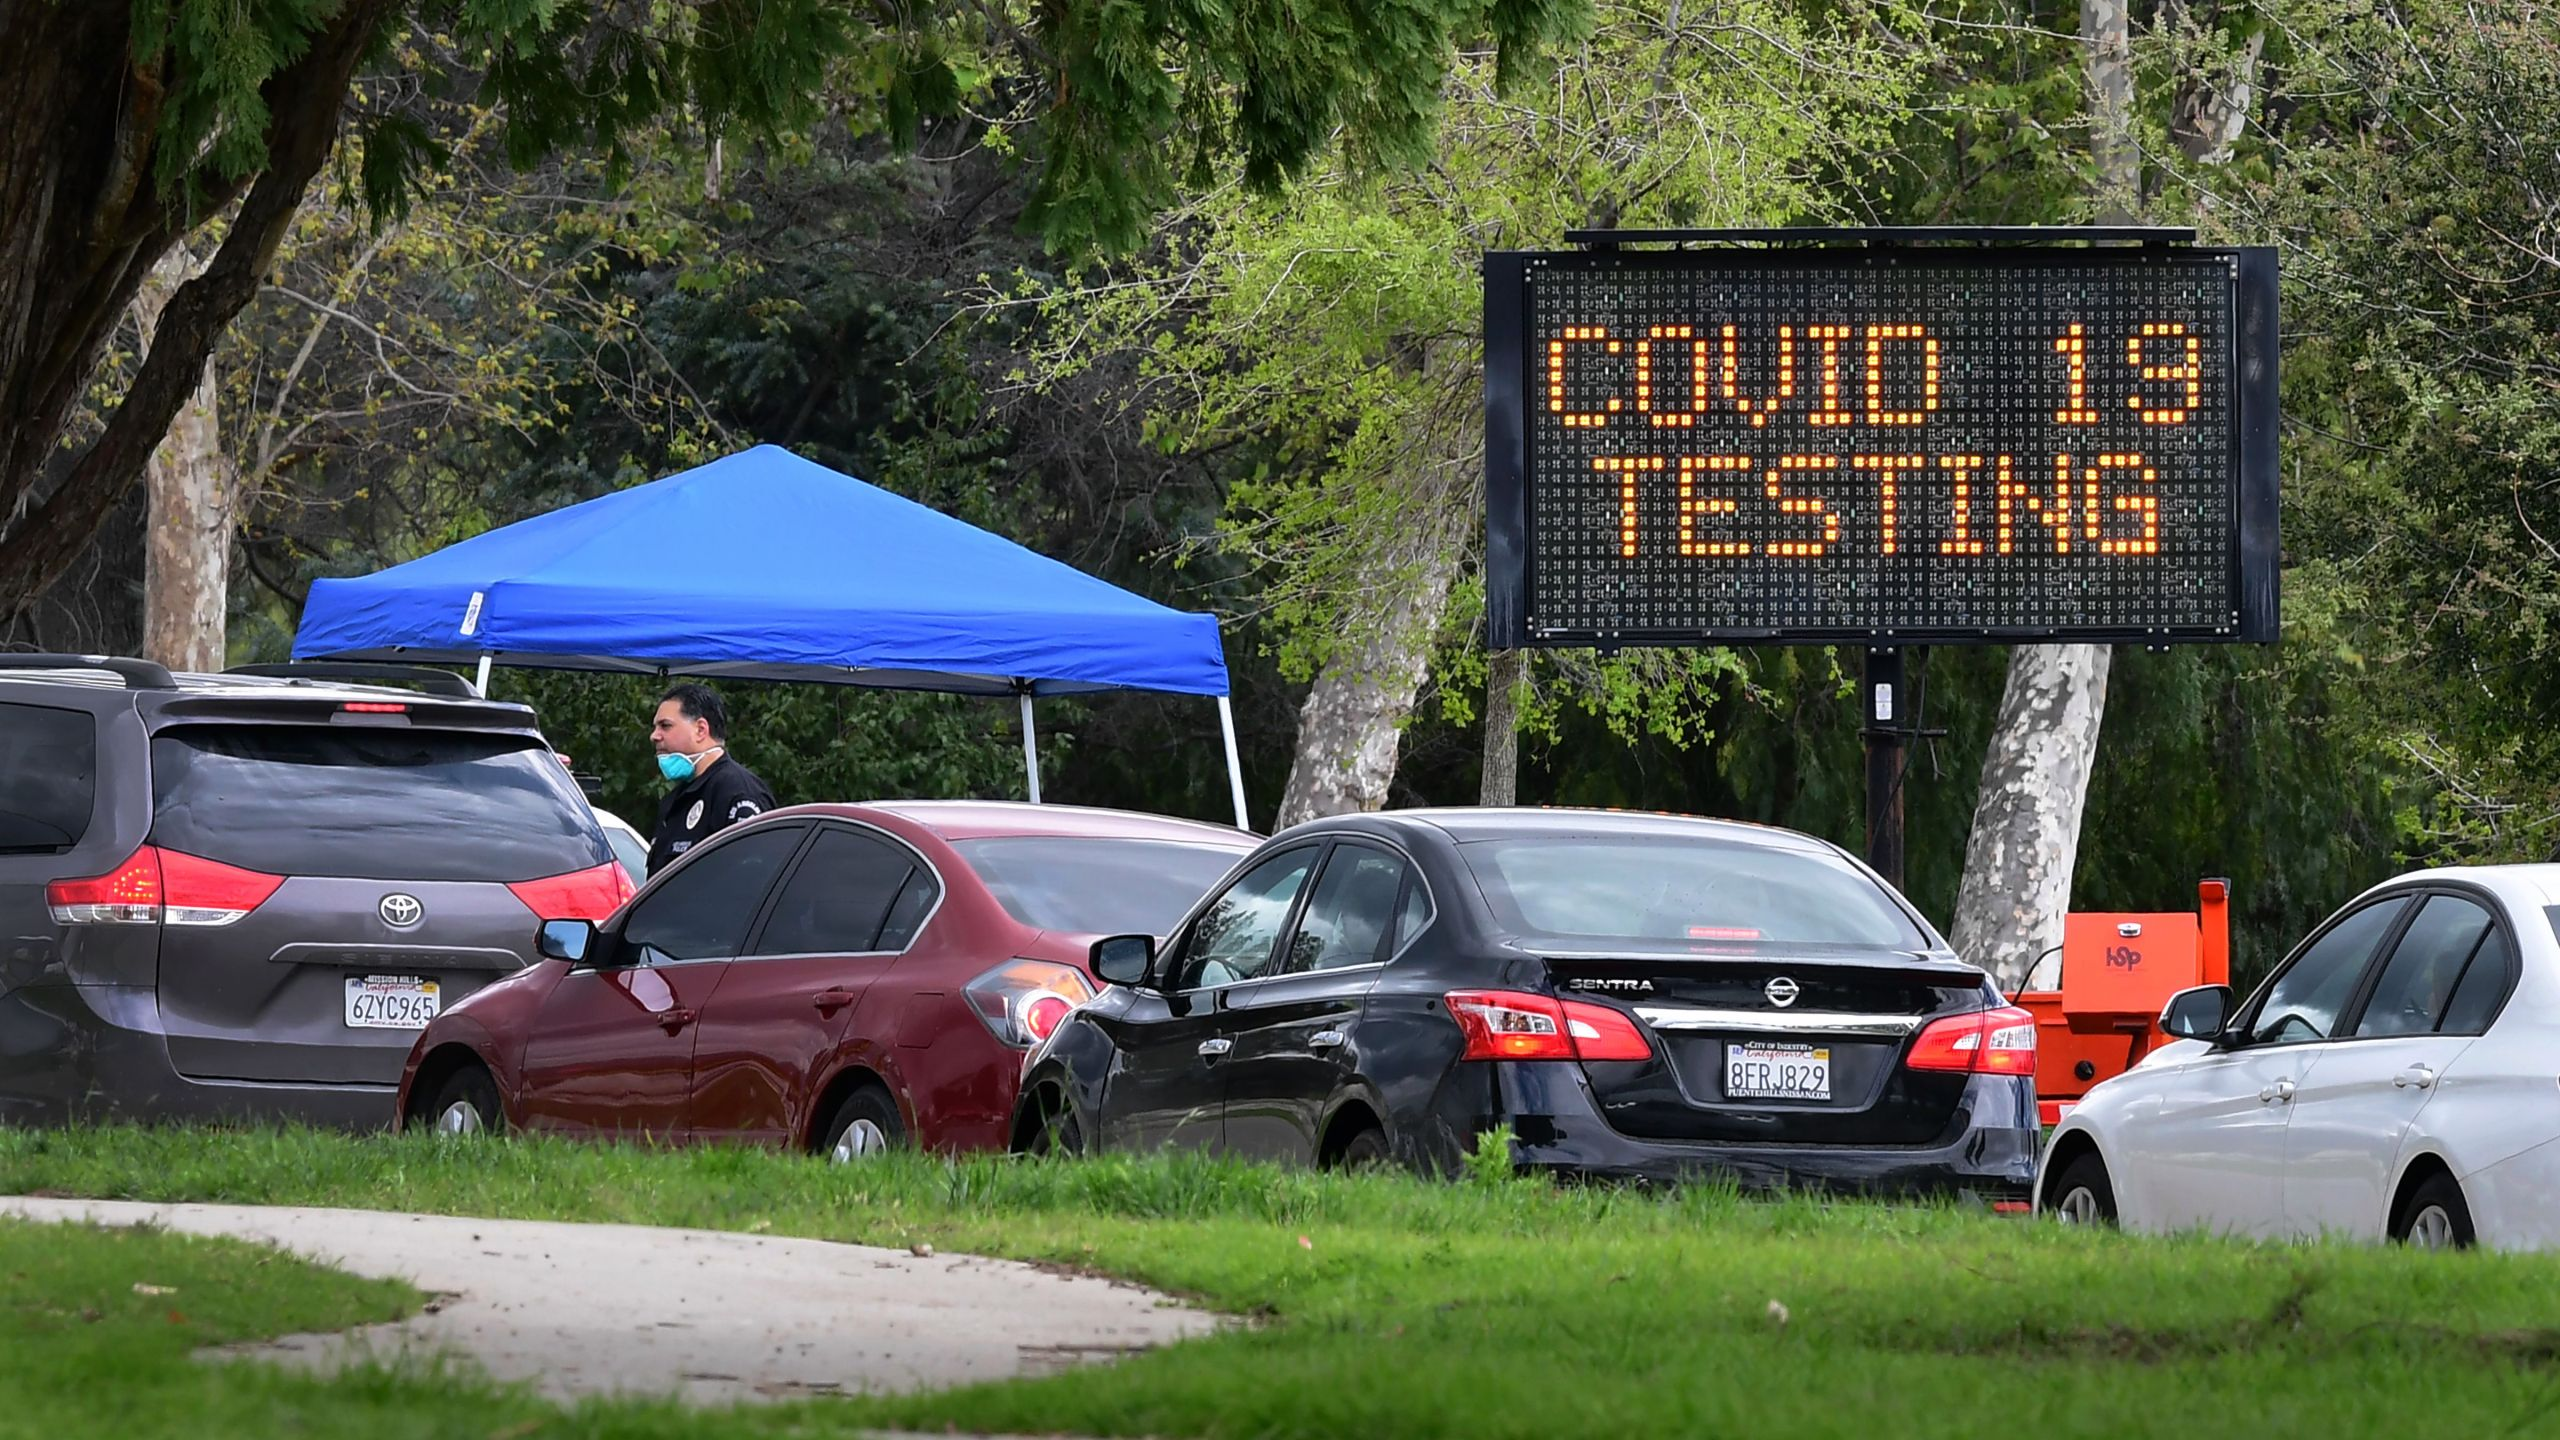 Los Angeles County has Free Testing even if you do not have symptoms